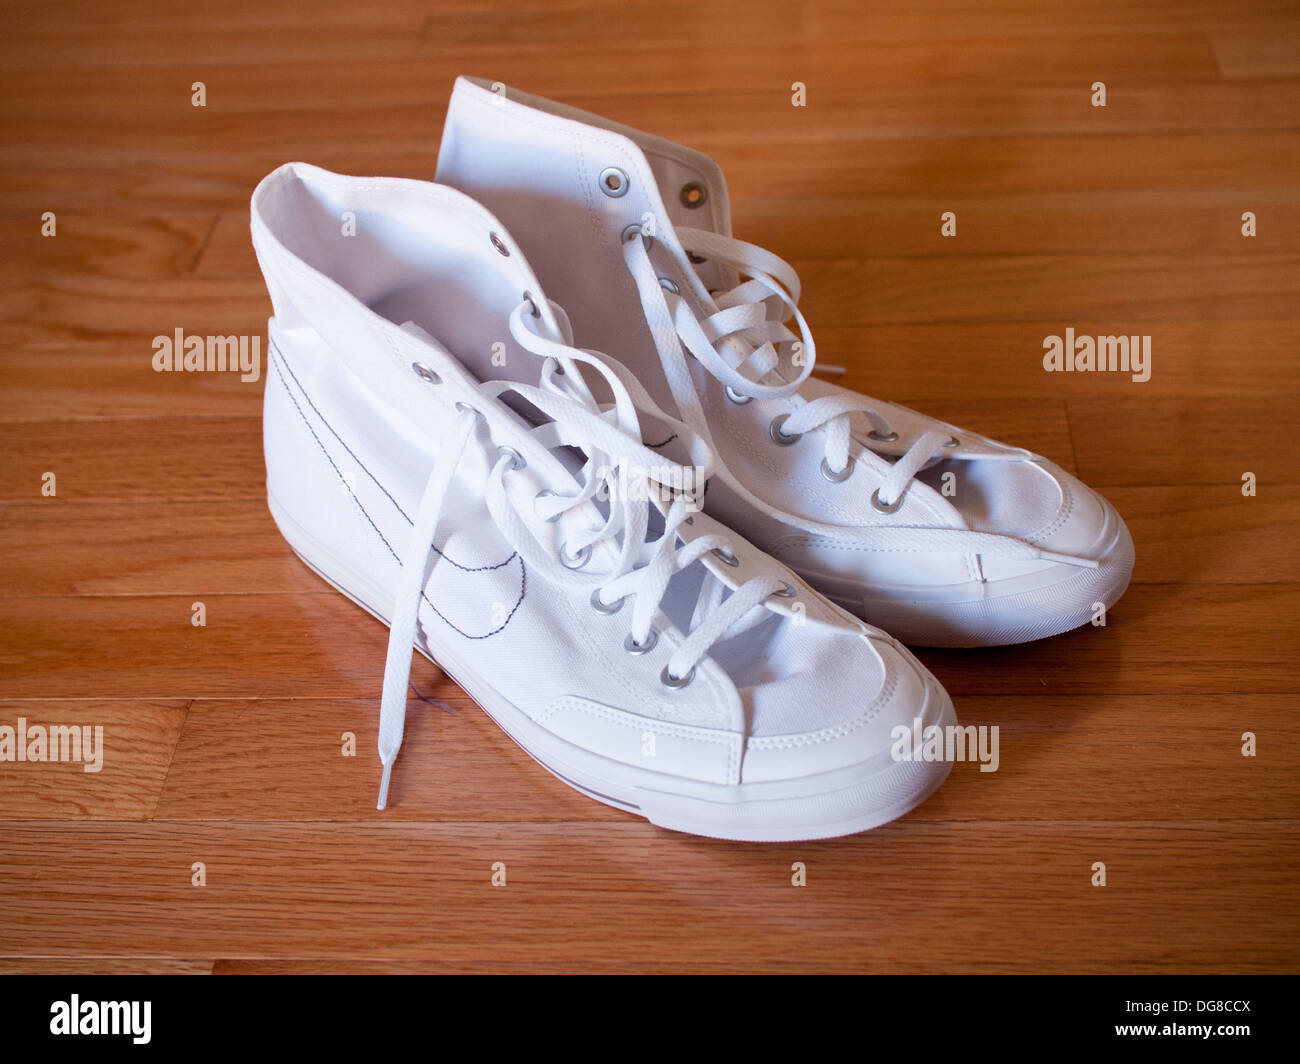 A pair of white Nike Go Mid Canvas casual canvas sneakers, 2011 model. - Stock Image